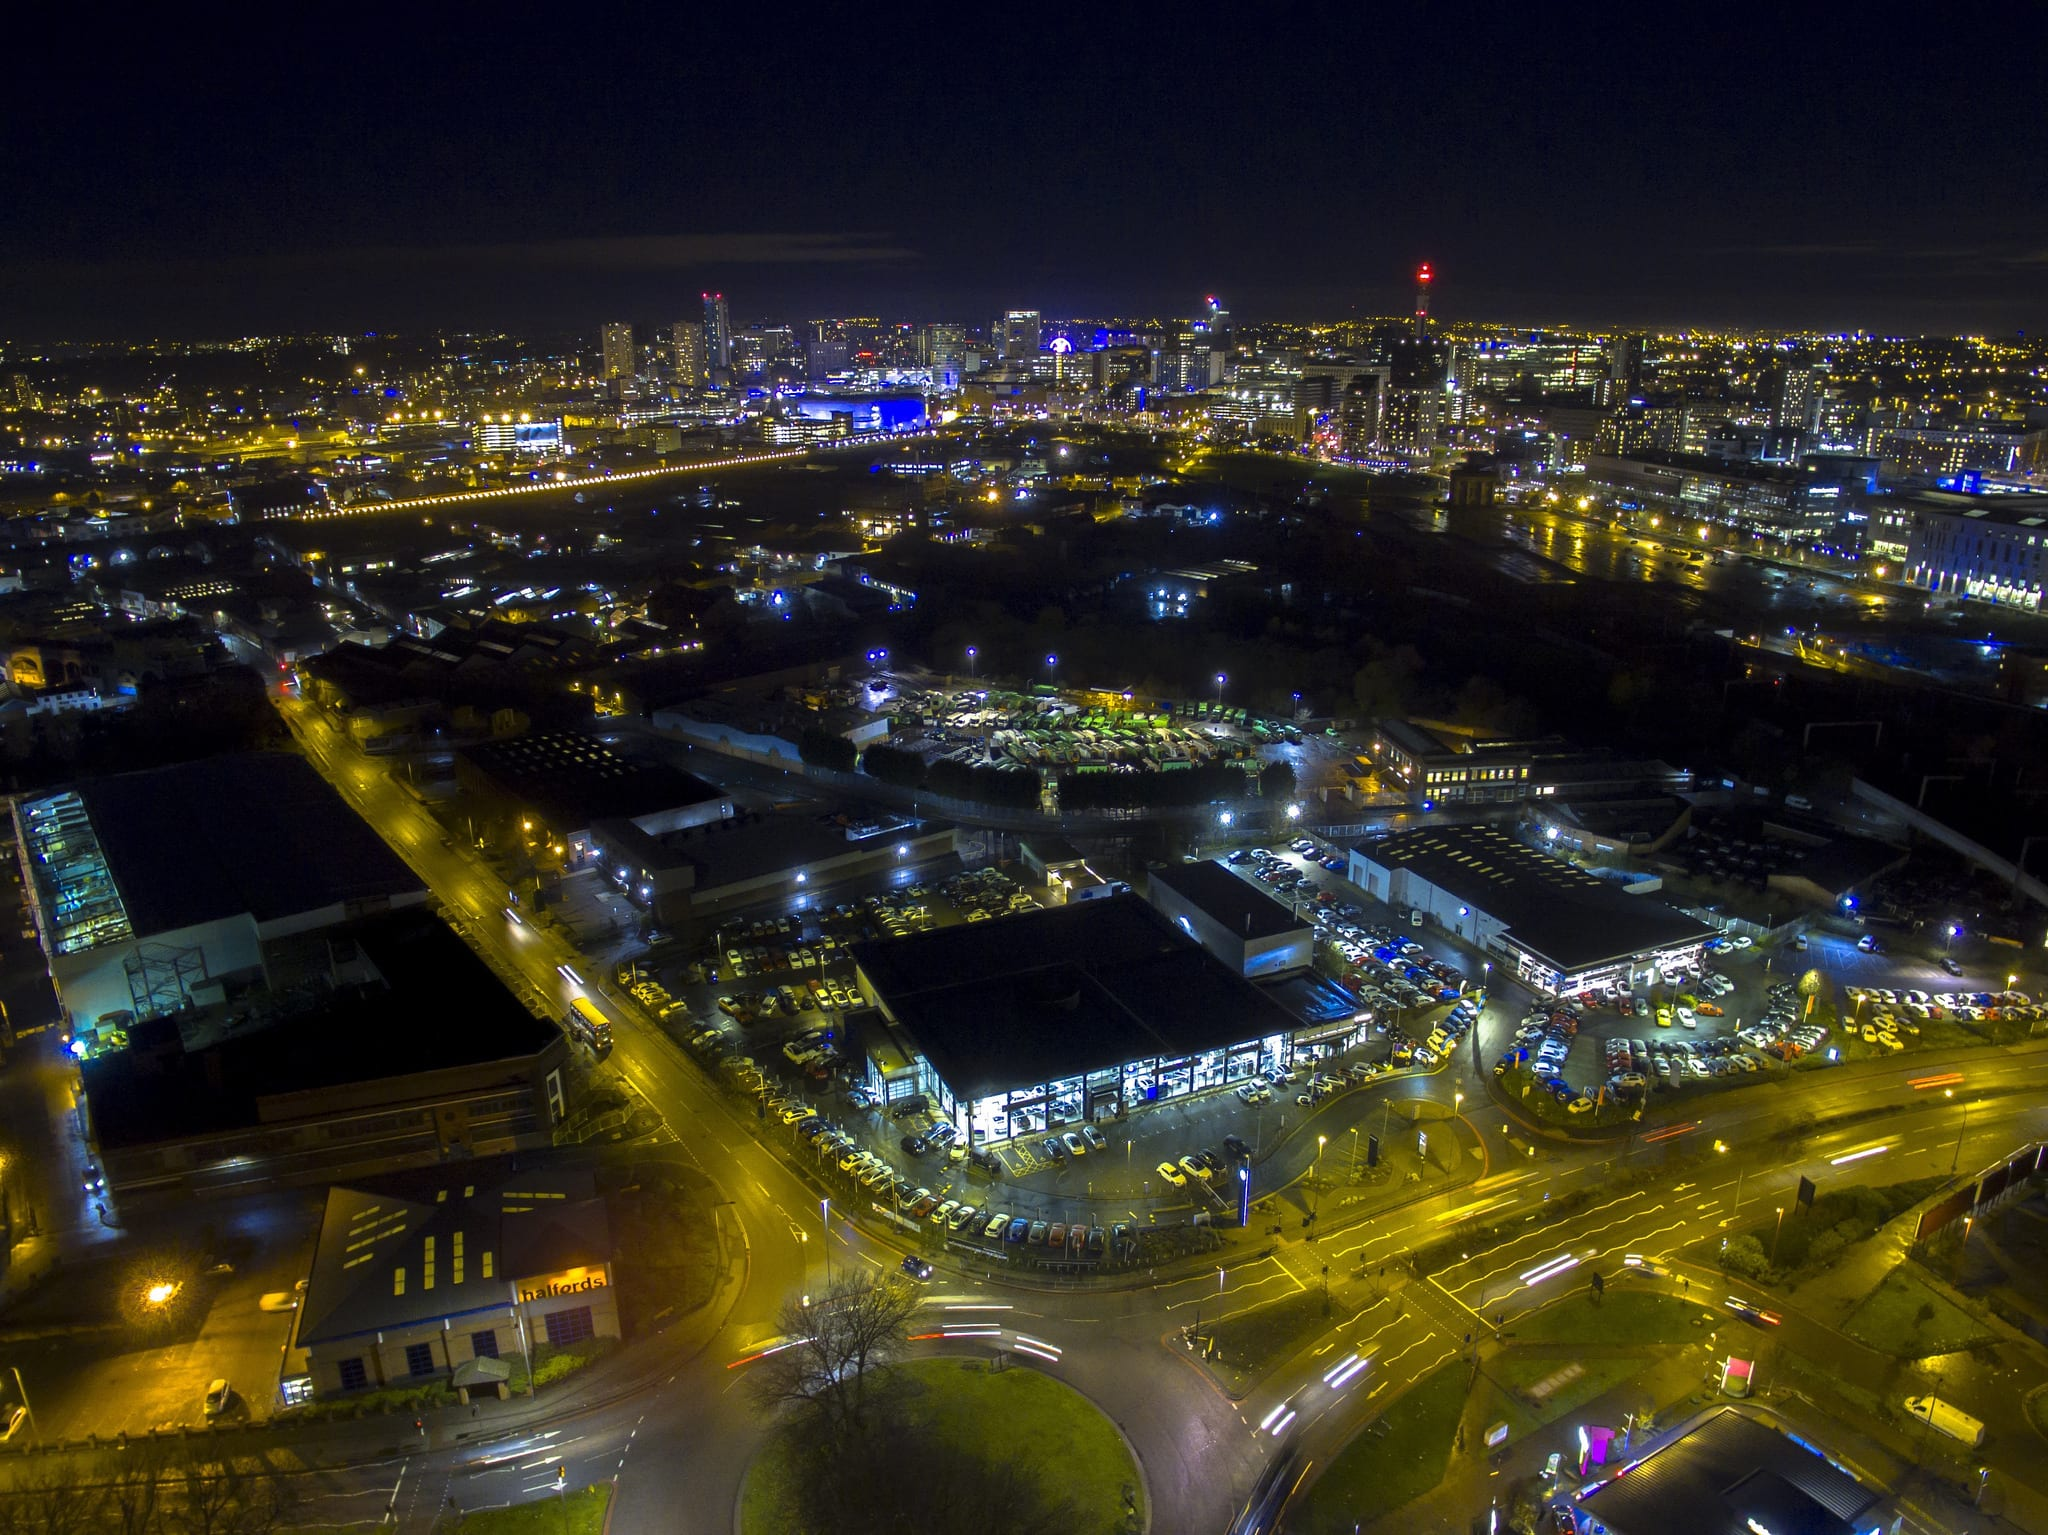 Night Time Photo of Birmingham City Centre